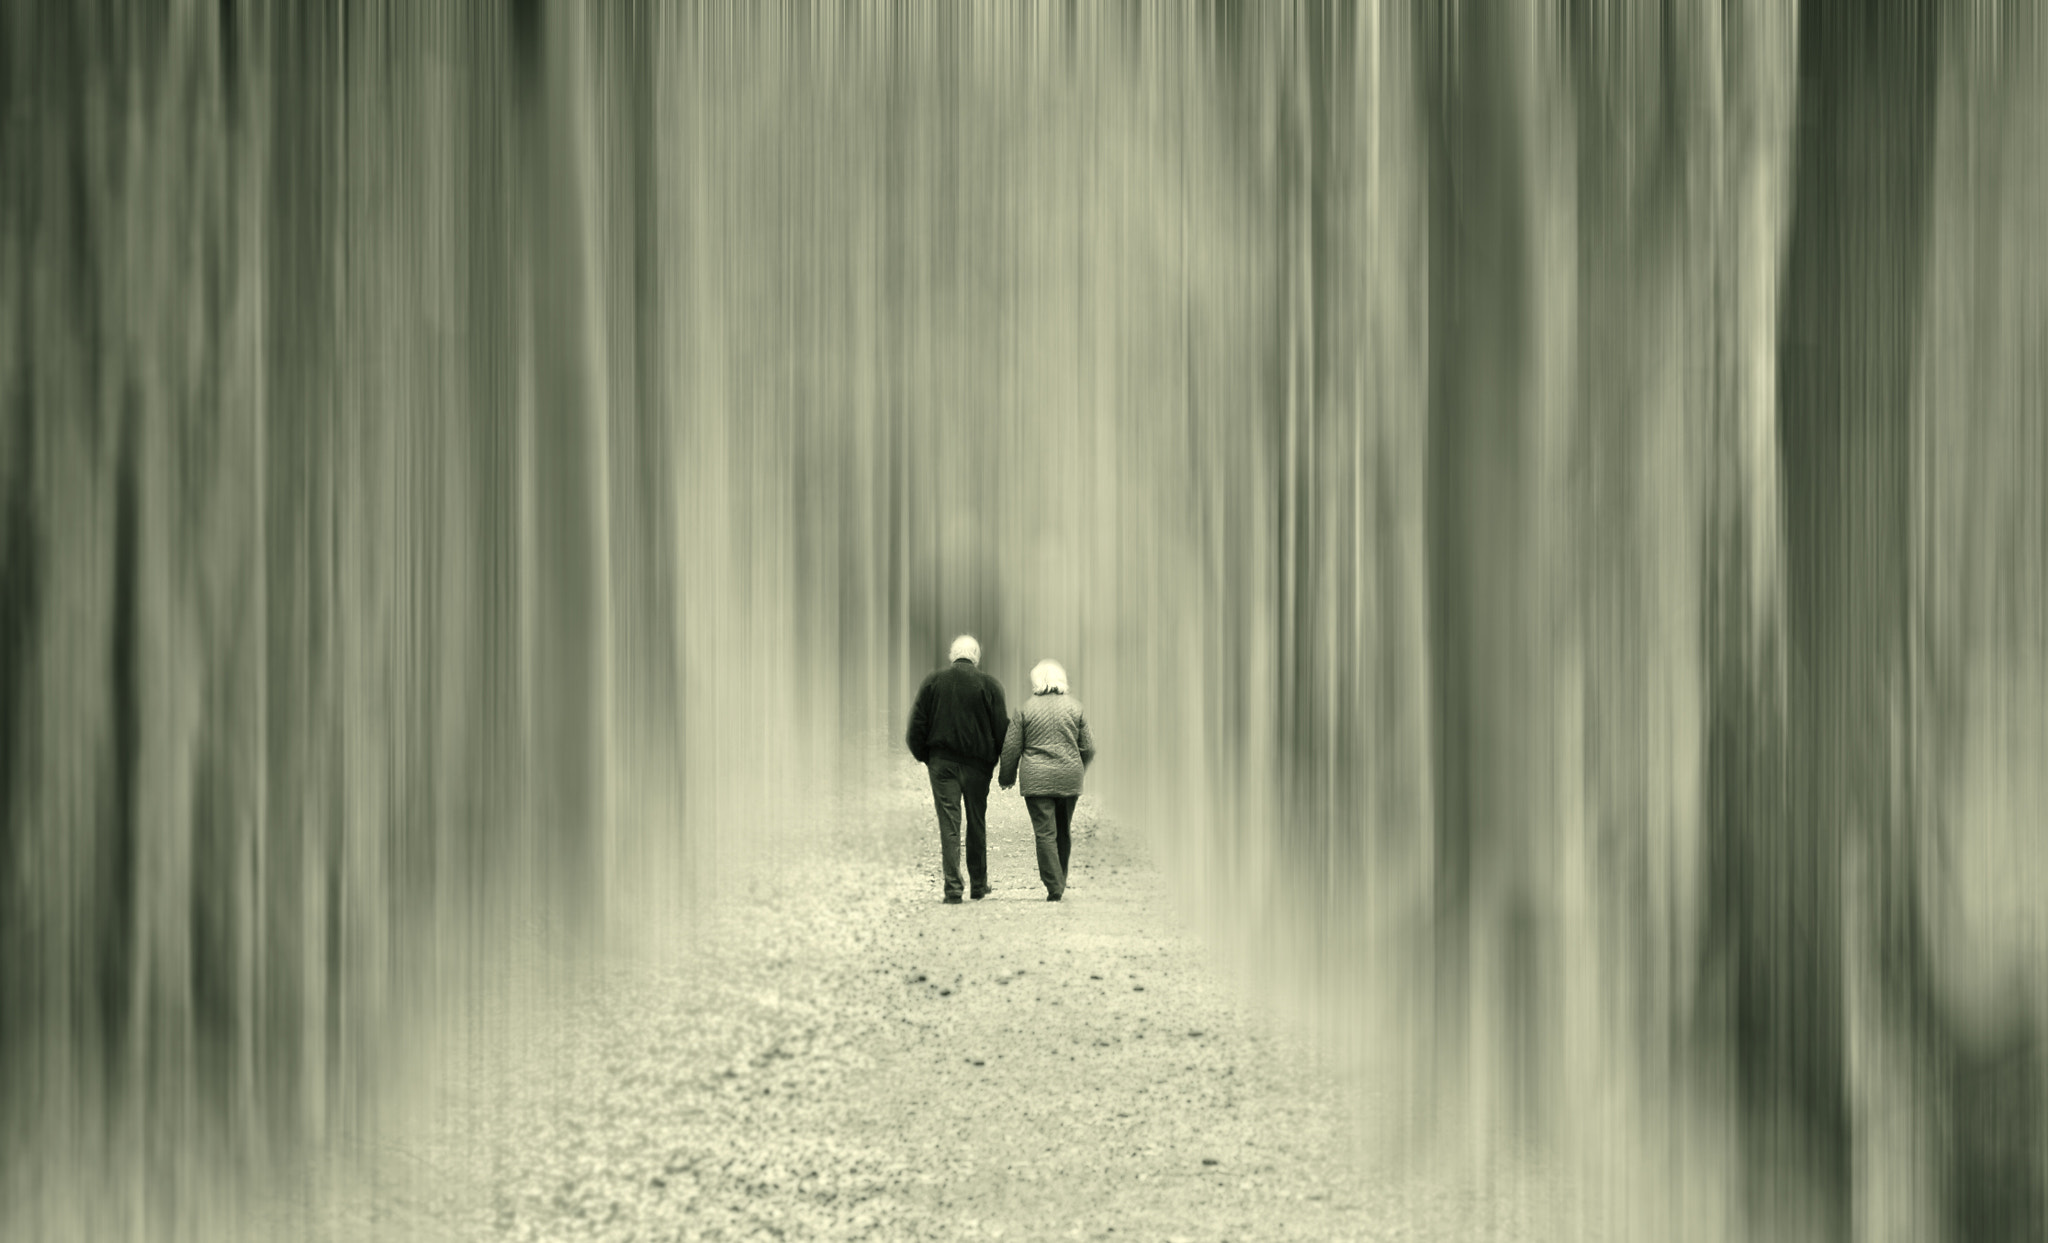 Photograph We walk the path together by pictures of memory on 500px